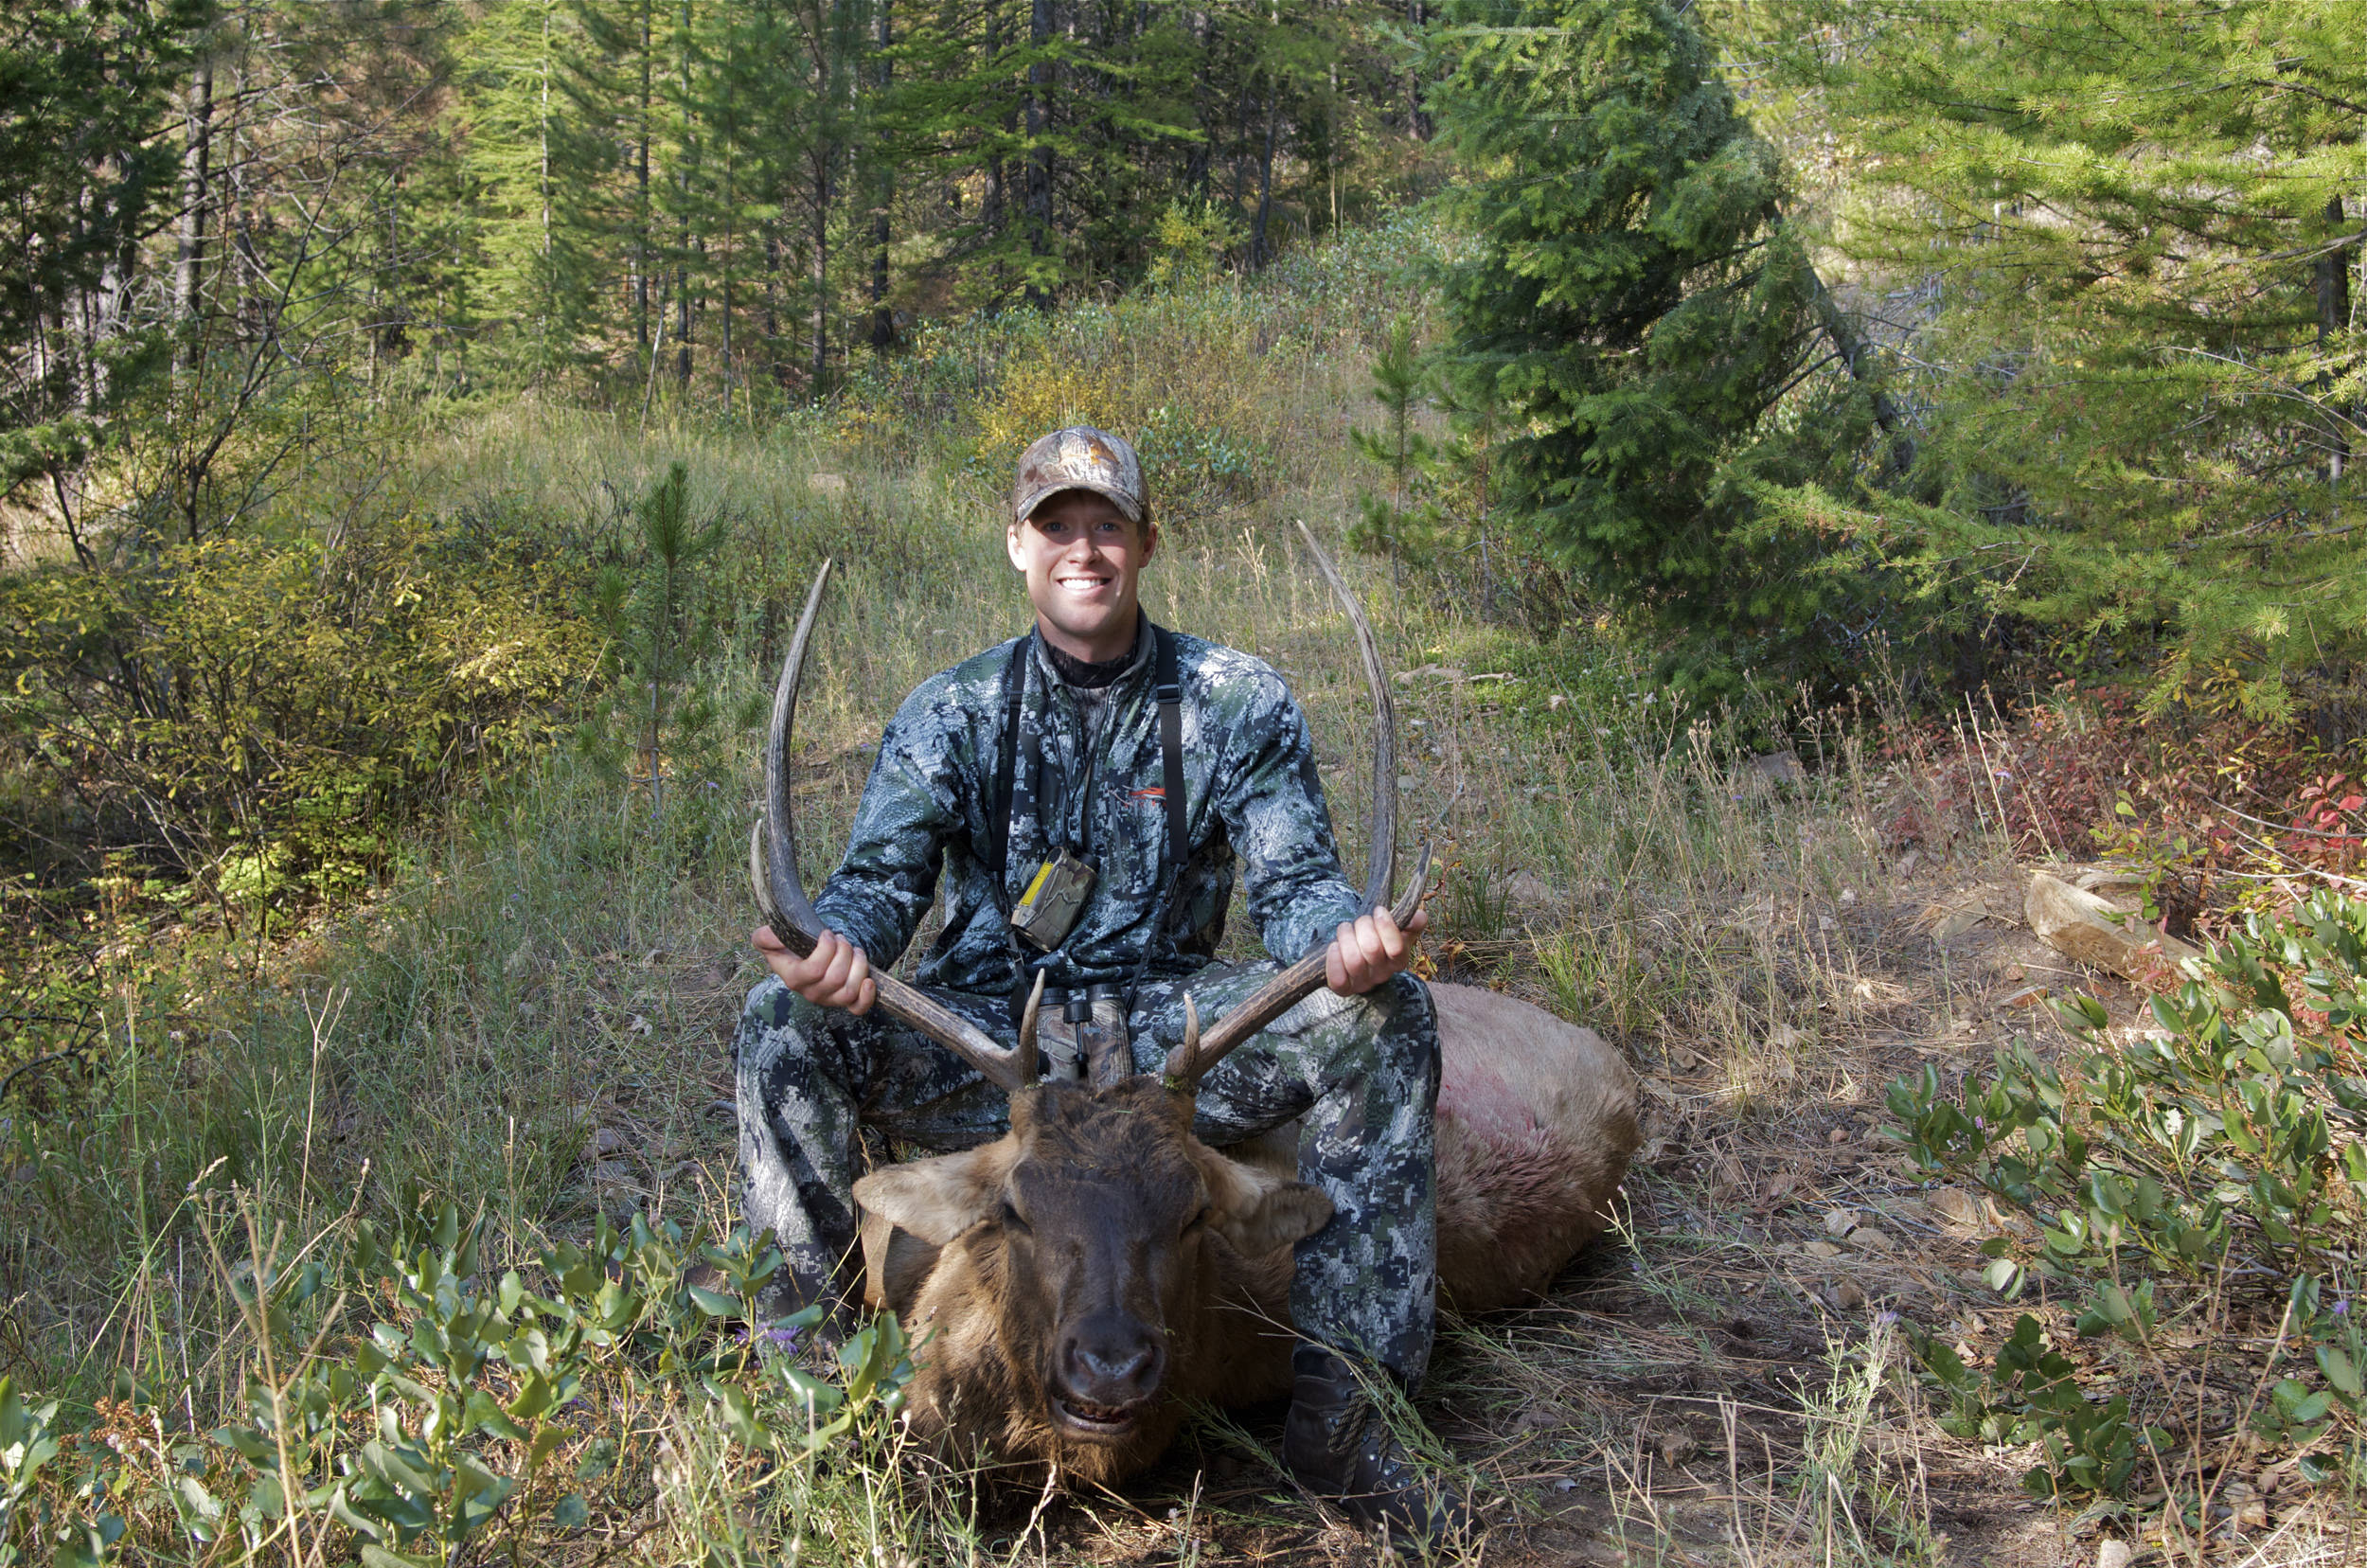 Bowhunting Montana, archery elk hunting, Montana, MT, hunting district 292, Montana Wild, elk, bugling elk, outdoors, missoula, wallows, October